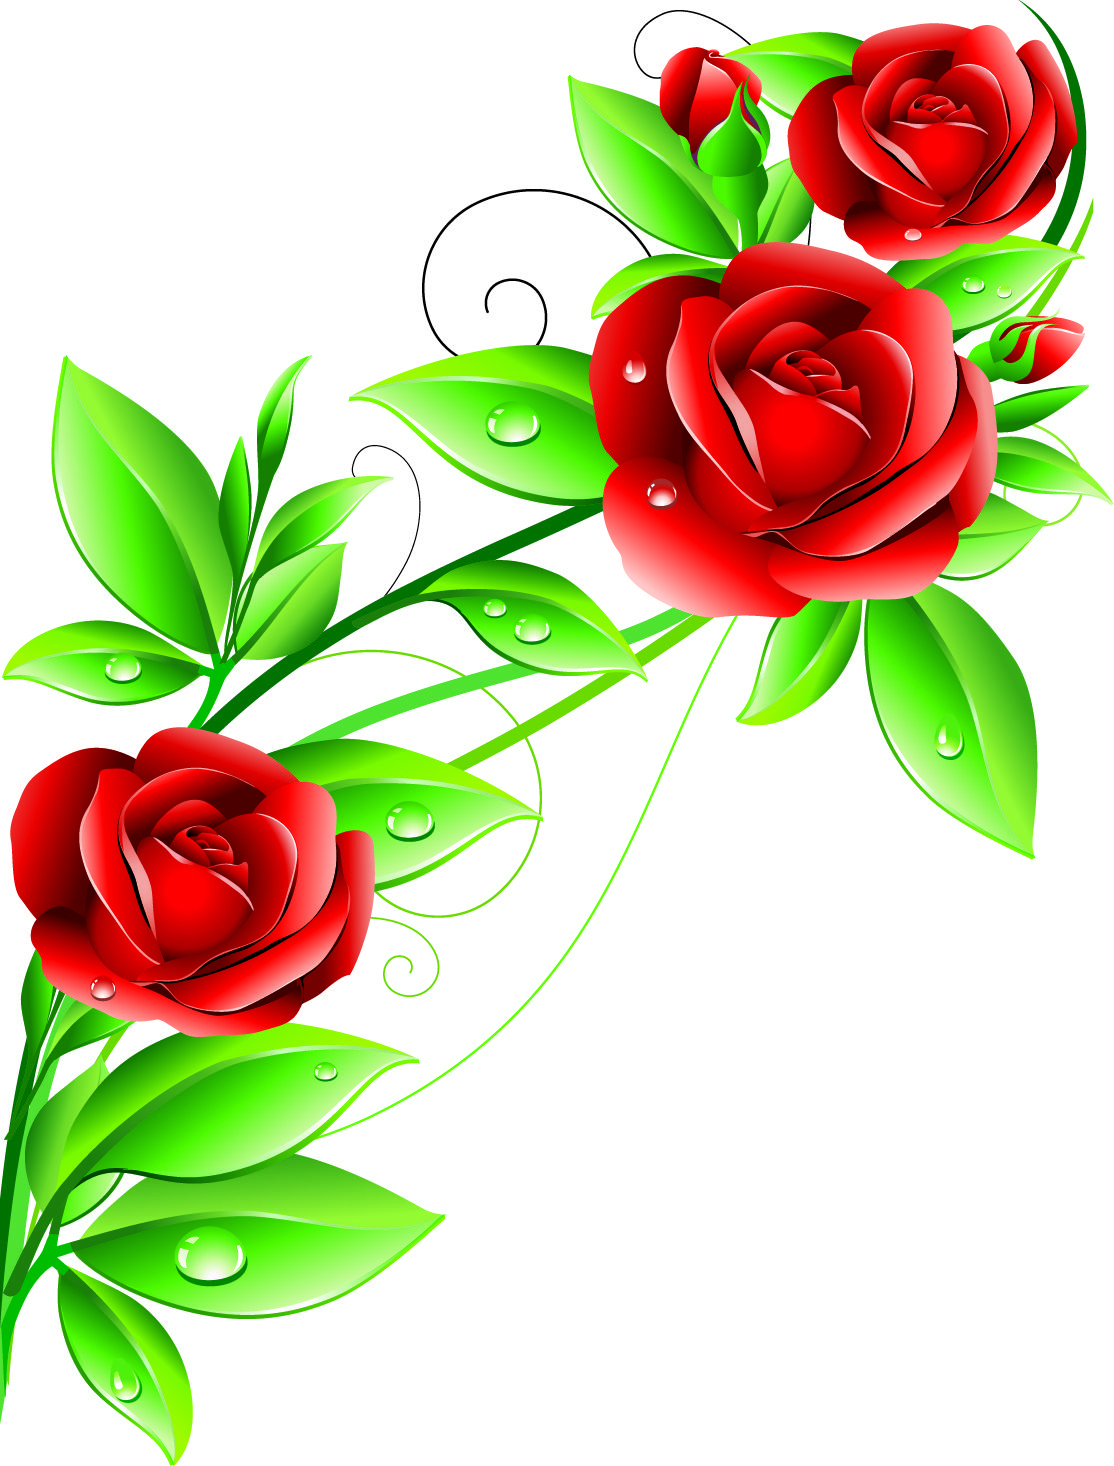 free vector beautiful flowers 02 vector graphic available for free